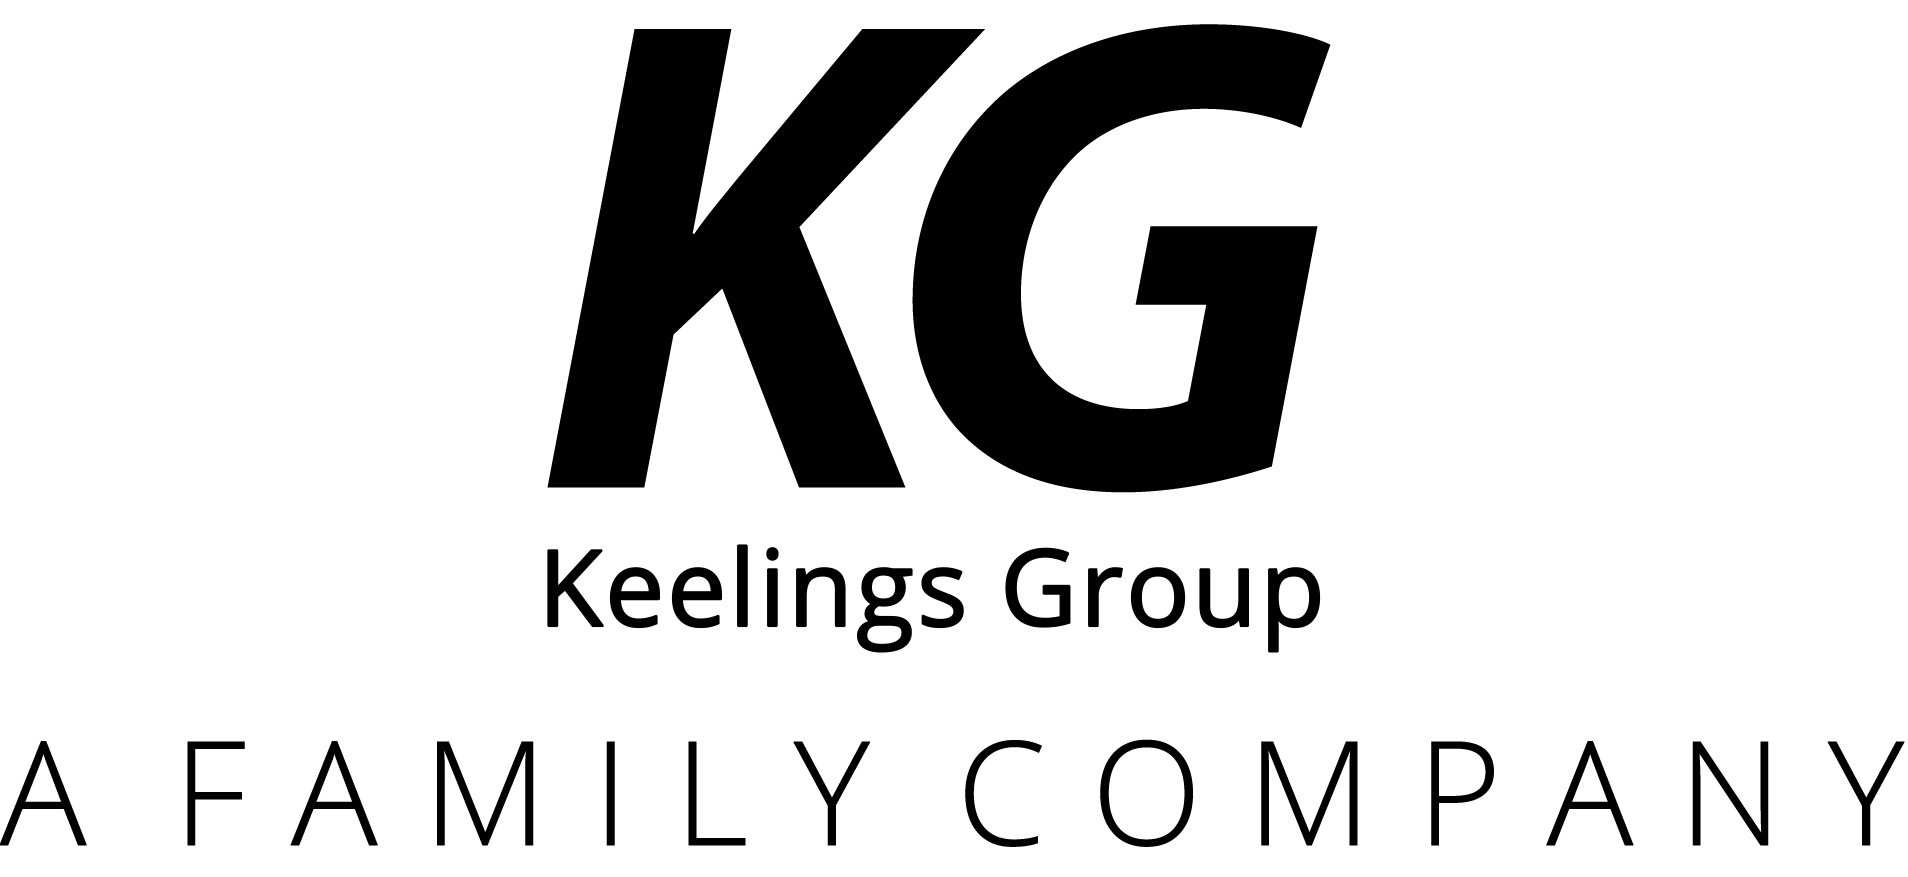 Keelings Group logo 2